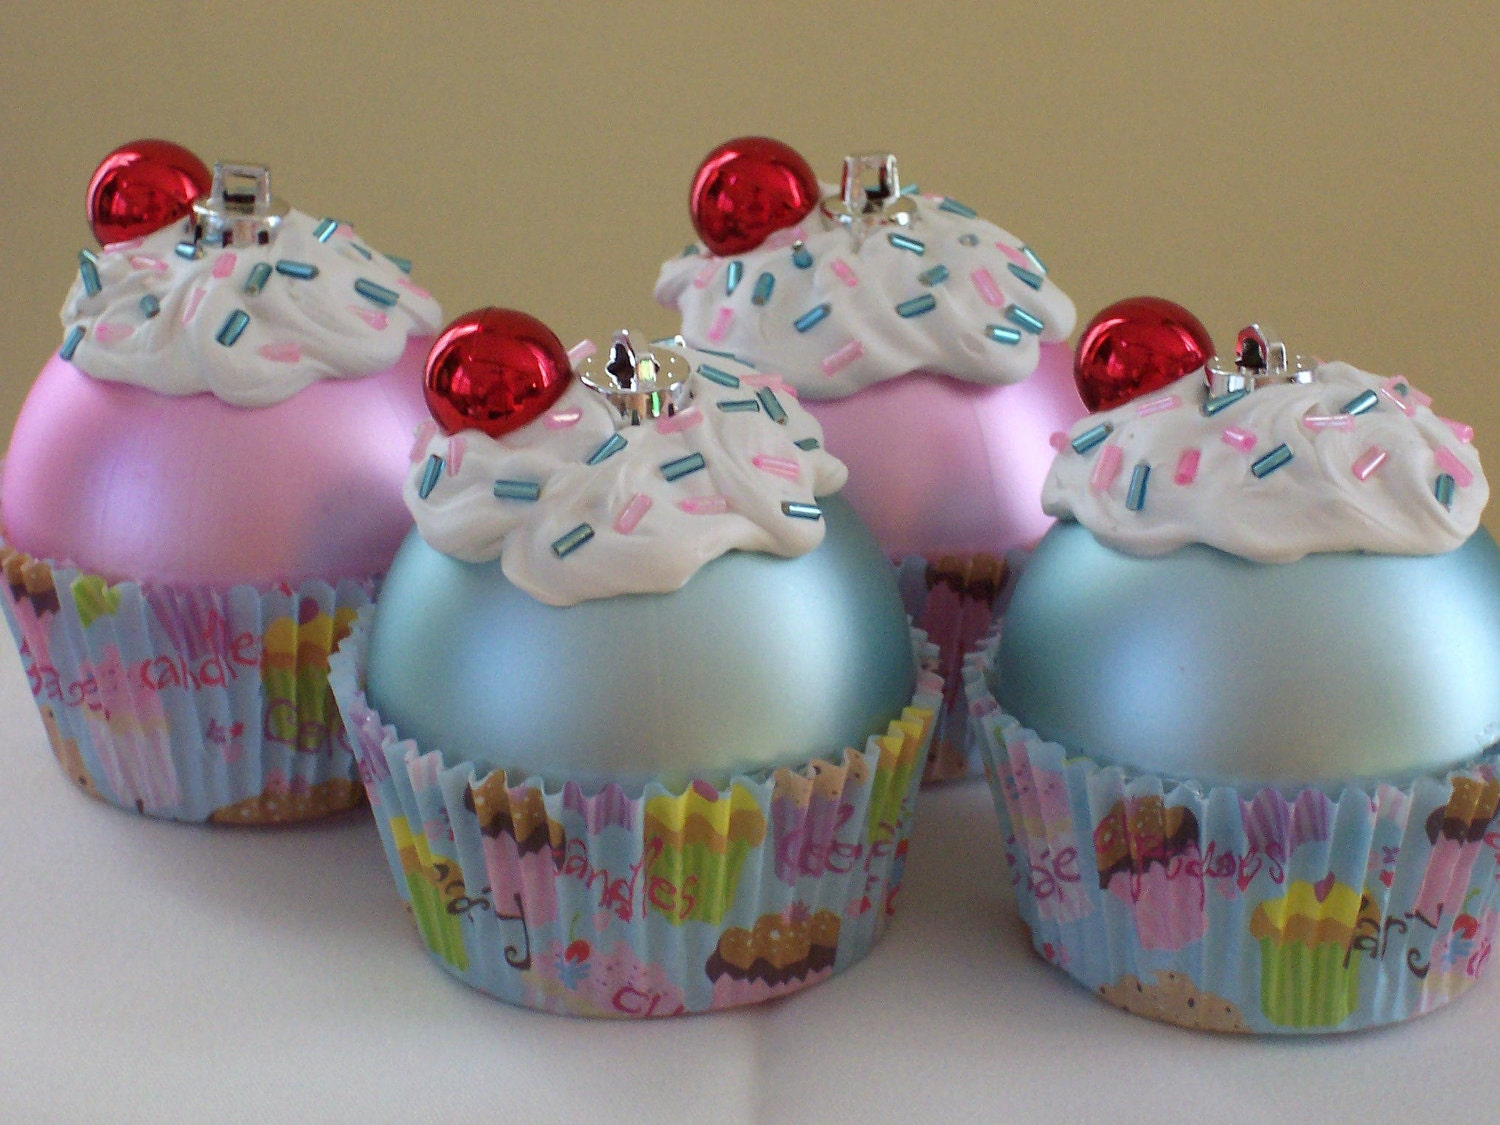 Christmas Decorations Cupcakes Easy : Chandeliers pendant lights